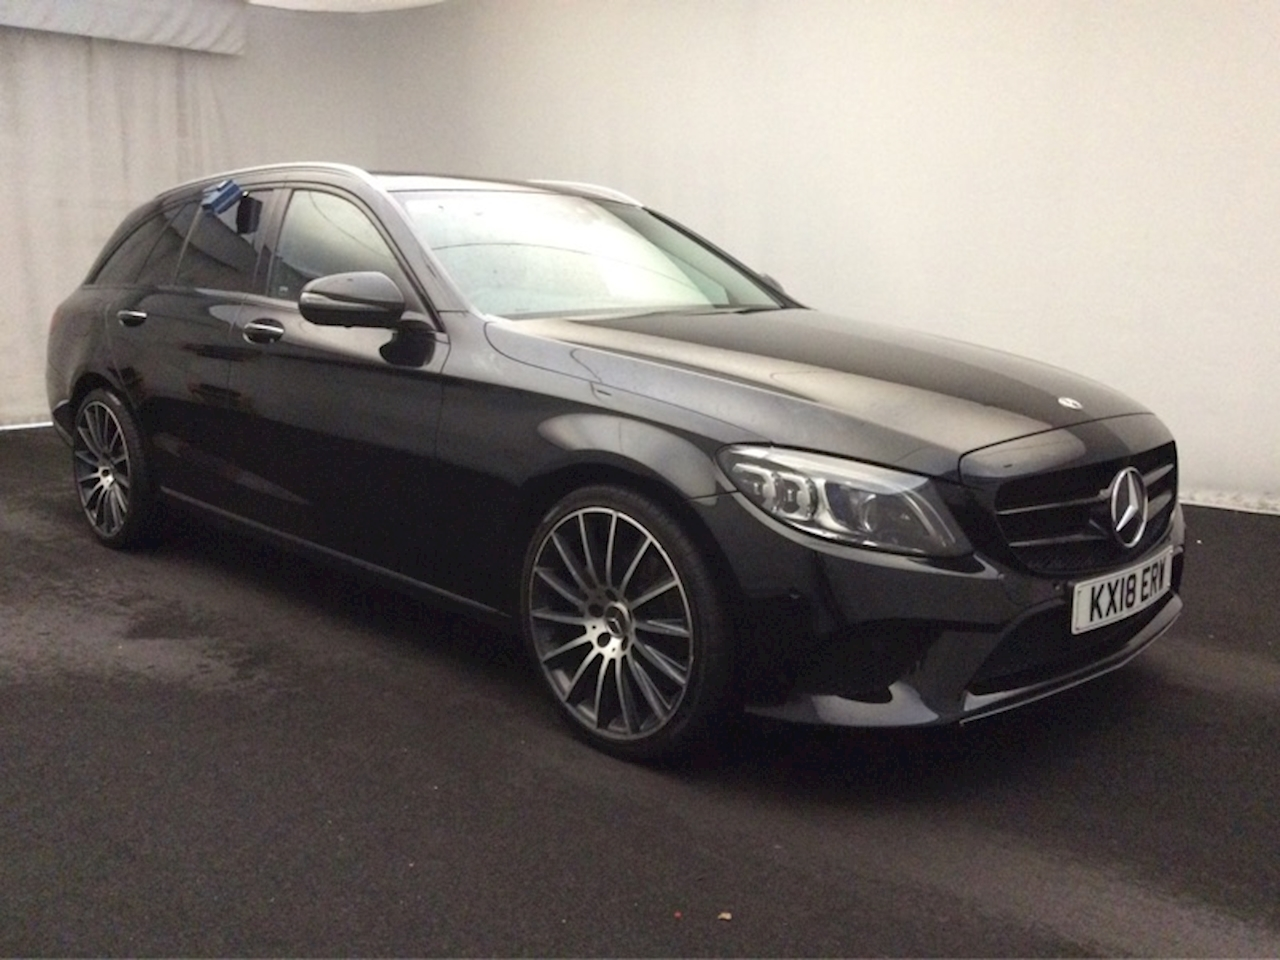 Mercedes-Benz C Class C220d Sport Premium Plus 2.0 5dr Estate Automatic Diesel